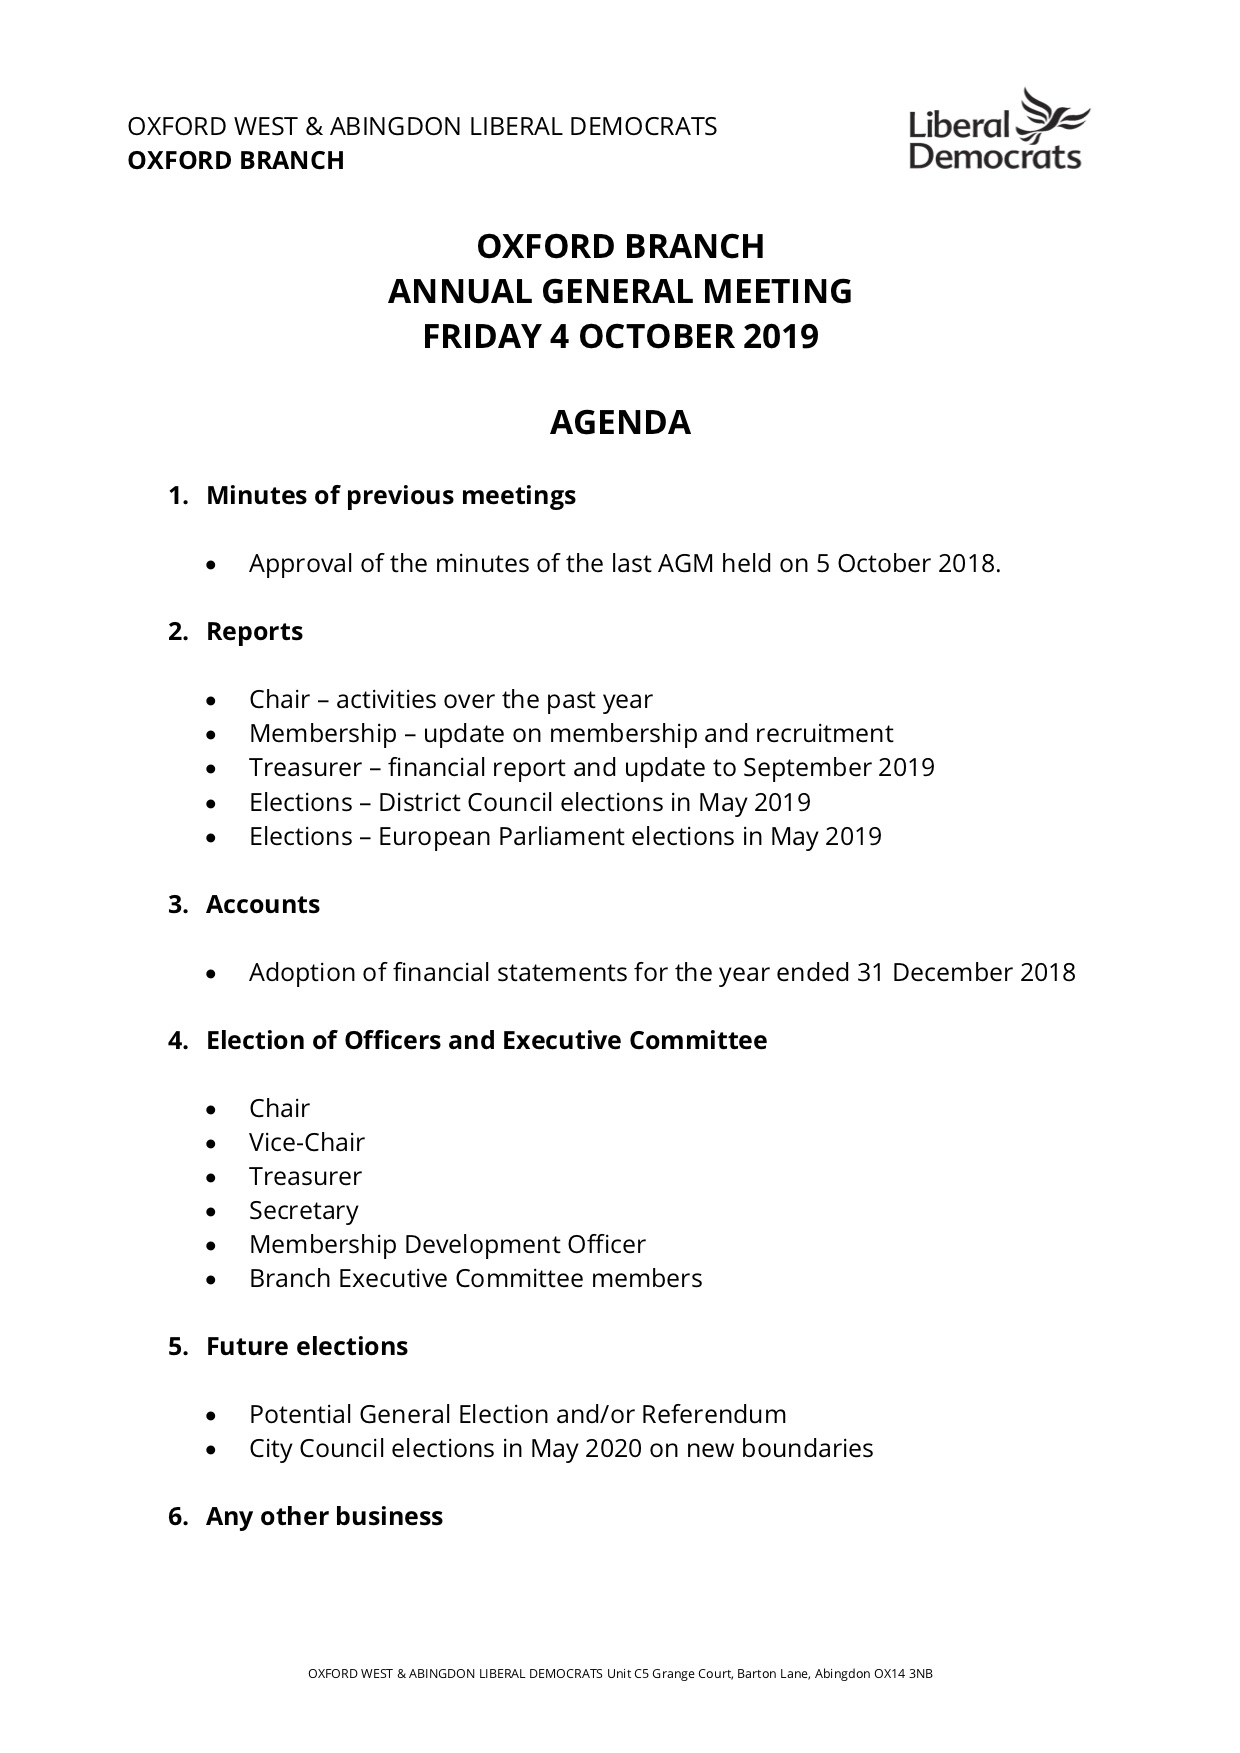 Oxford_Branch_2019_AGM_agenda.jpg